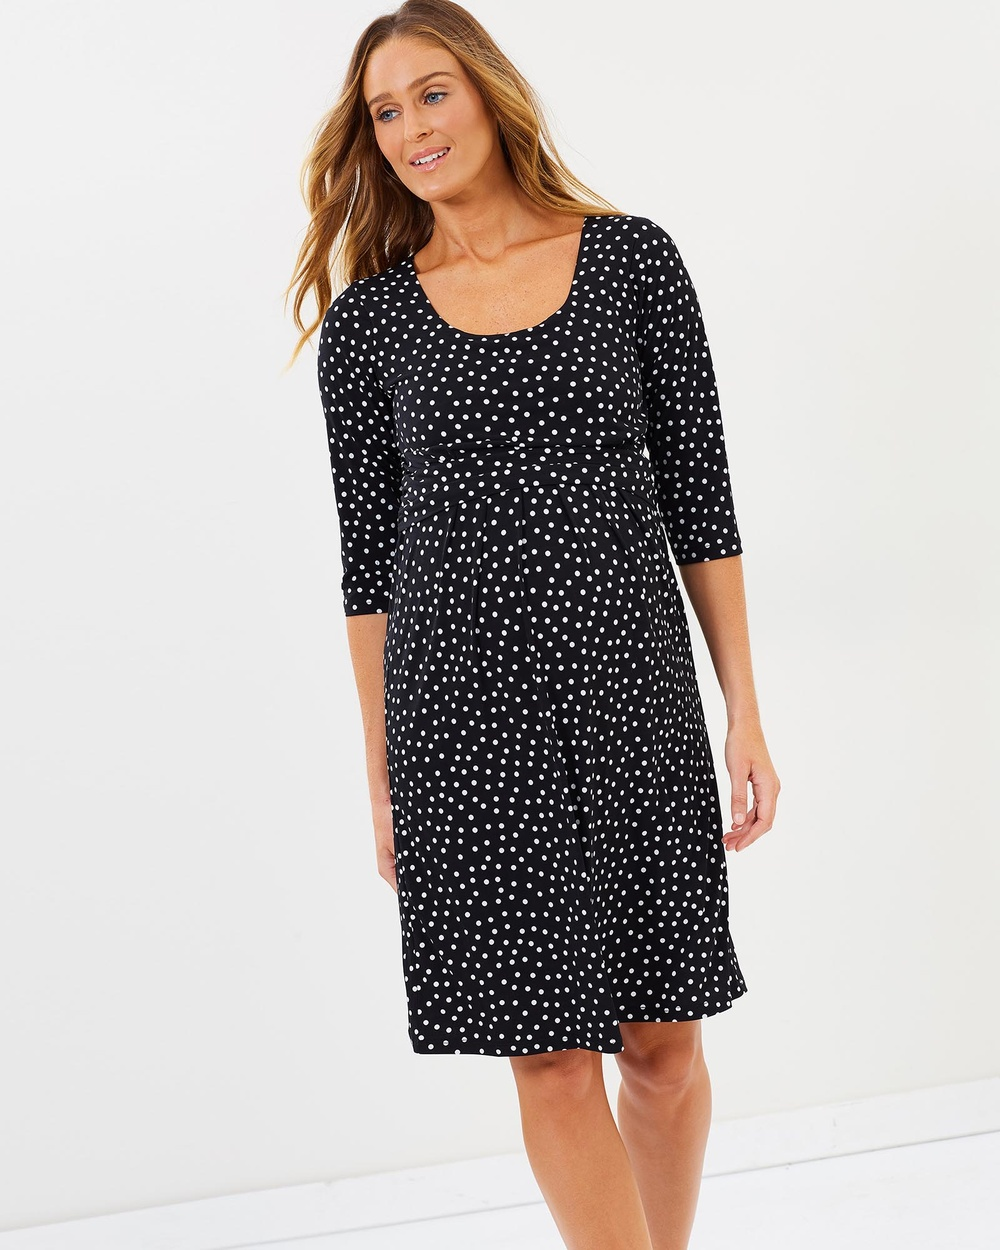 Angel Maternity Maternity Busy Mummy Nursing Dress in Dots Printed Dresses Black Maternity Busy Mummy Nursing Dress in Dots